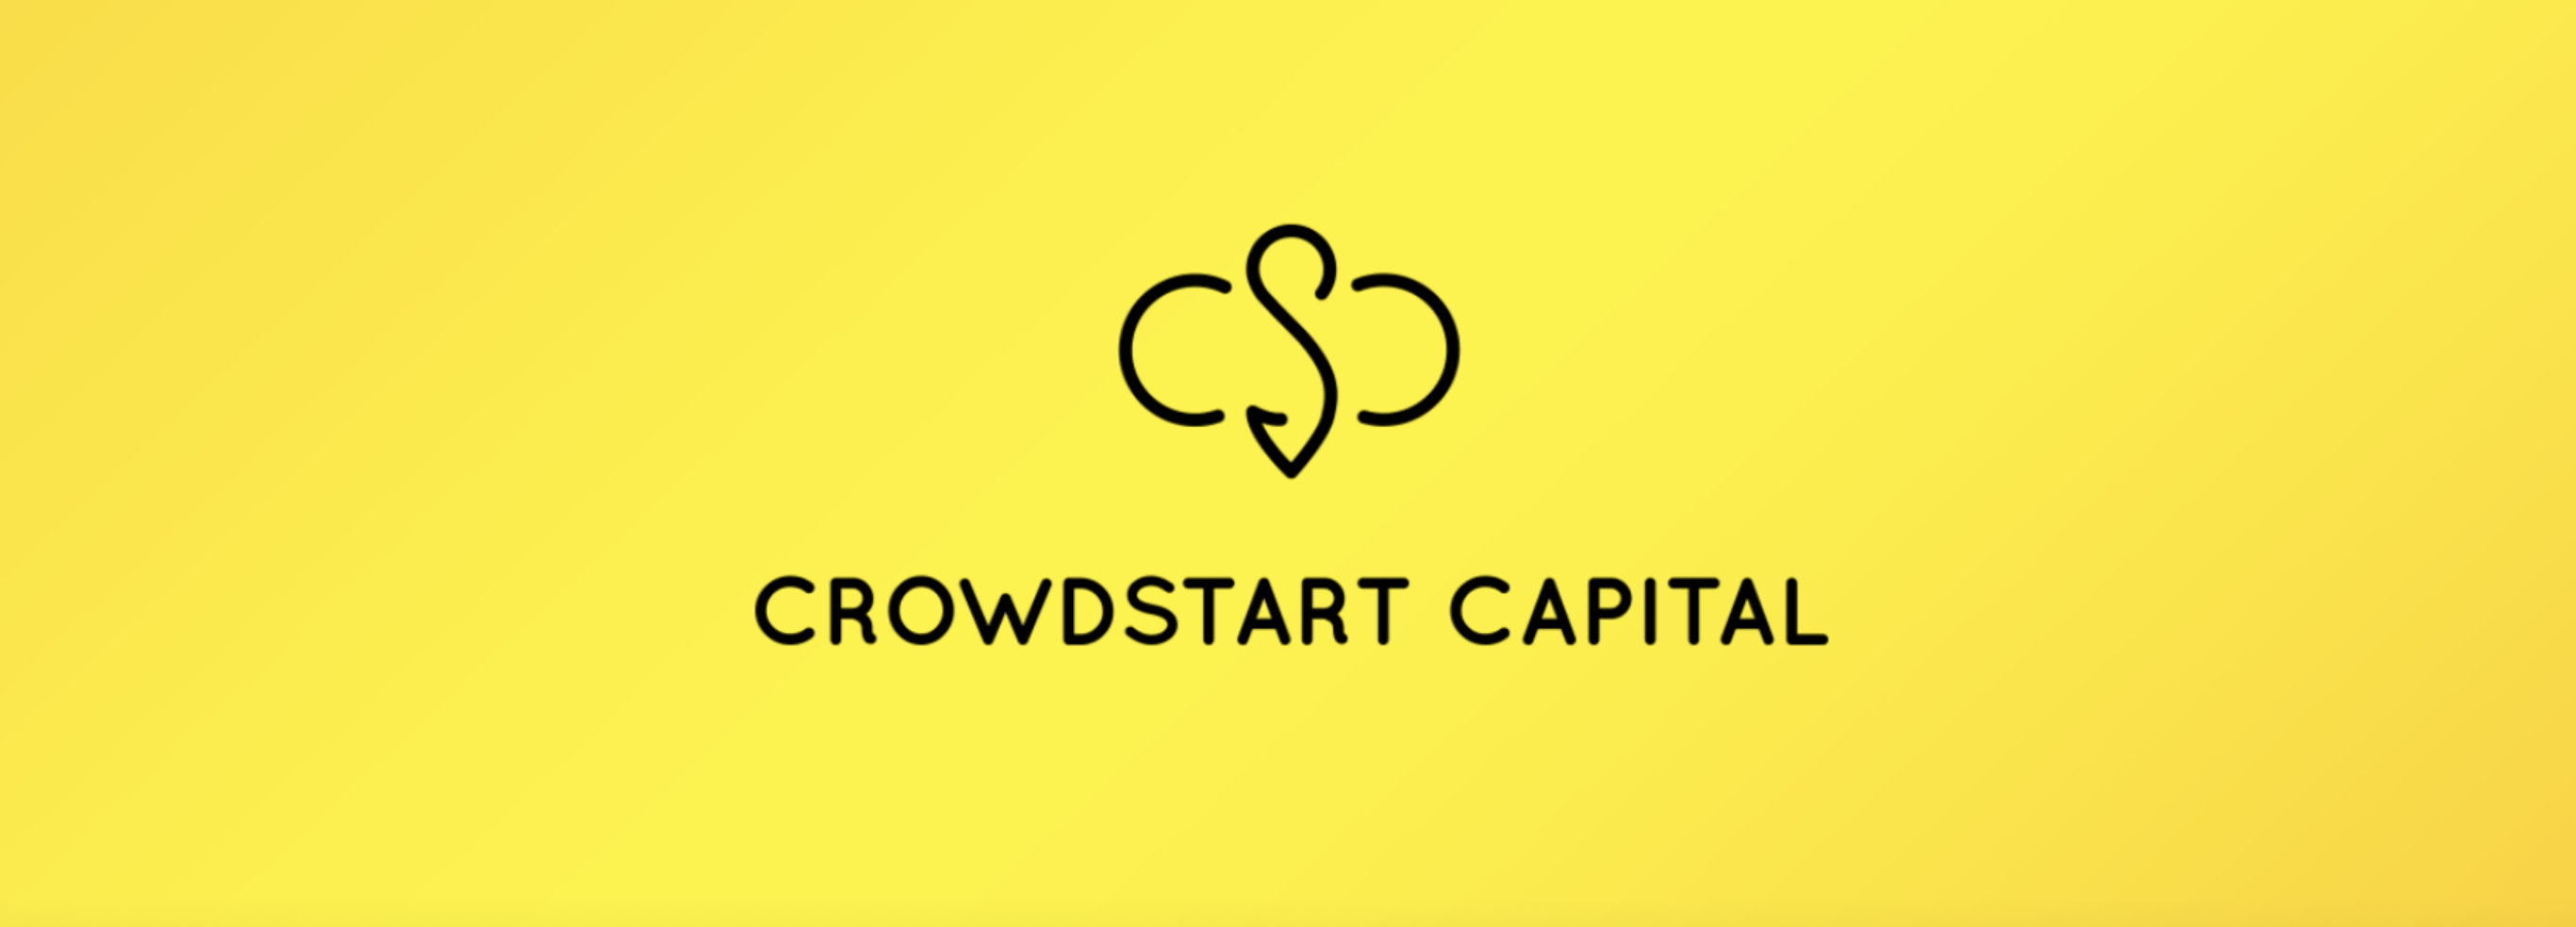 Welcome Startup Accelerator Crowdstart Capital And Crowdstart Coin XSC!